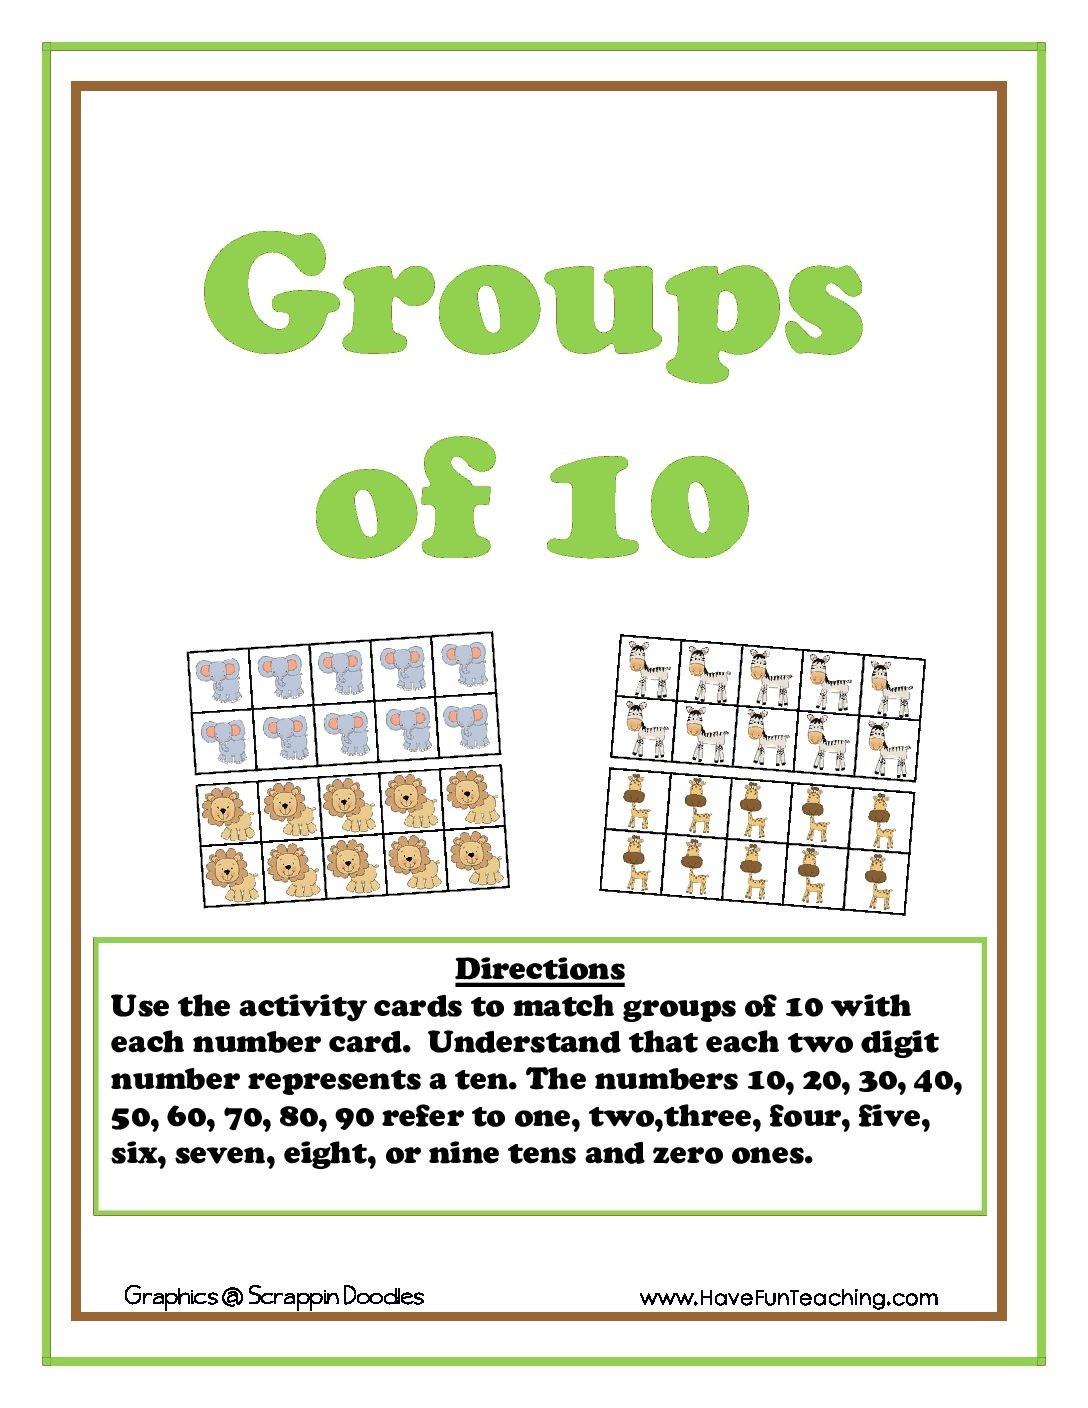 Counting Groups of 10 Activity